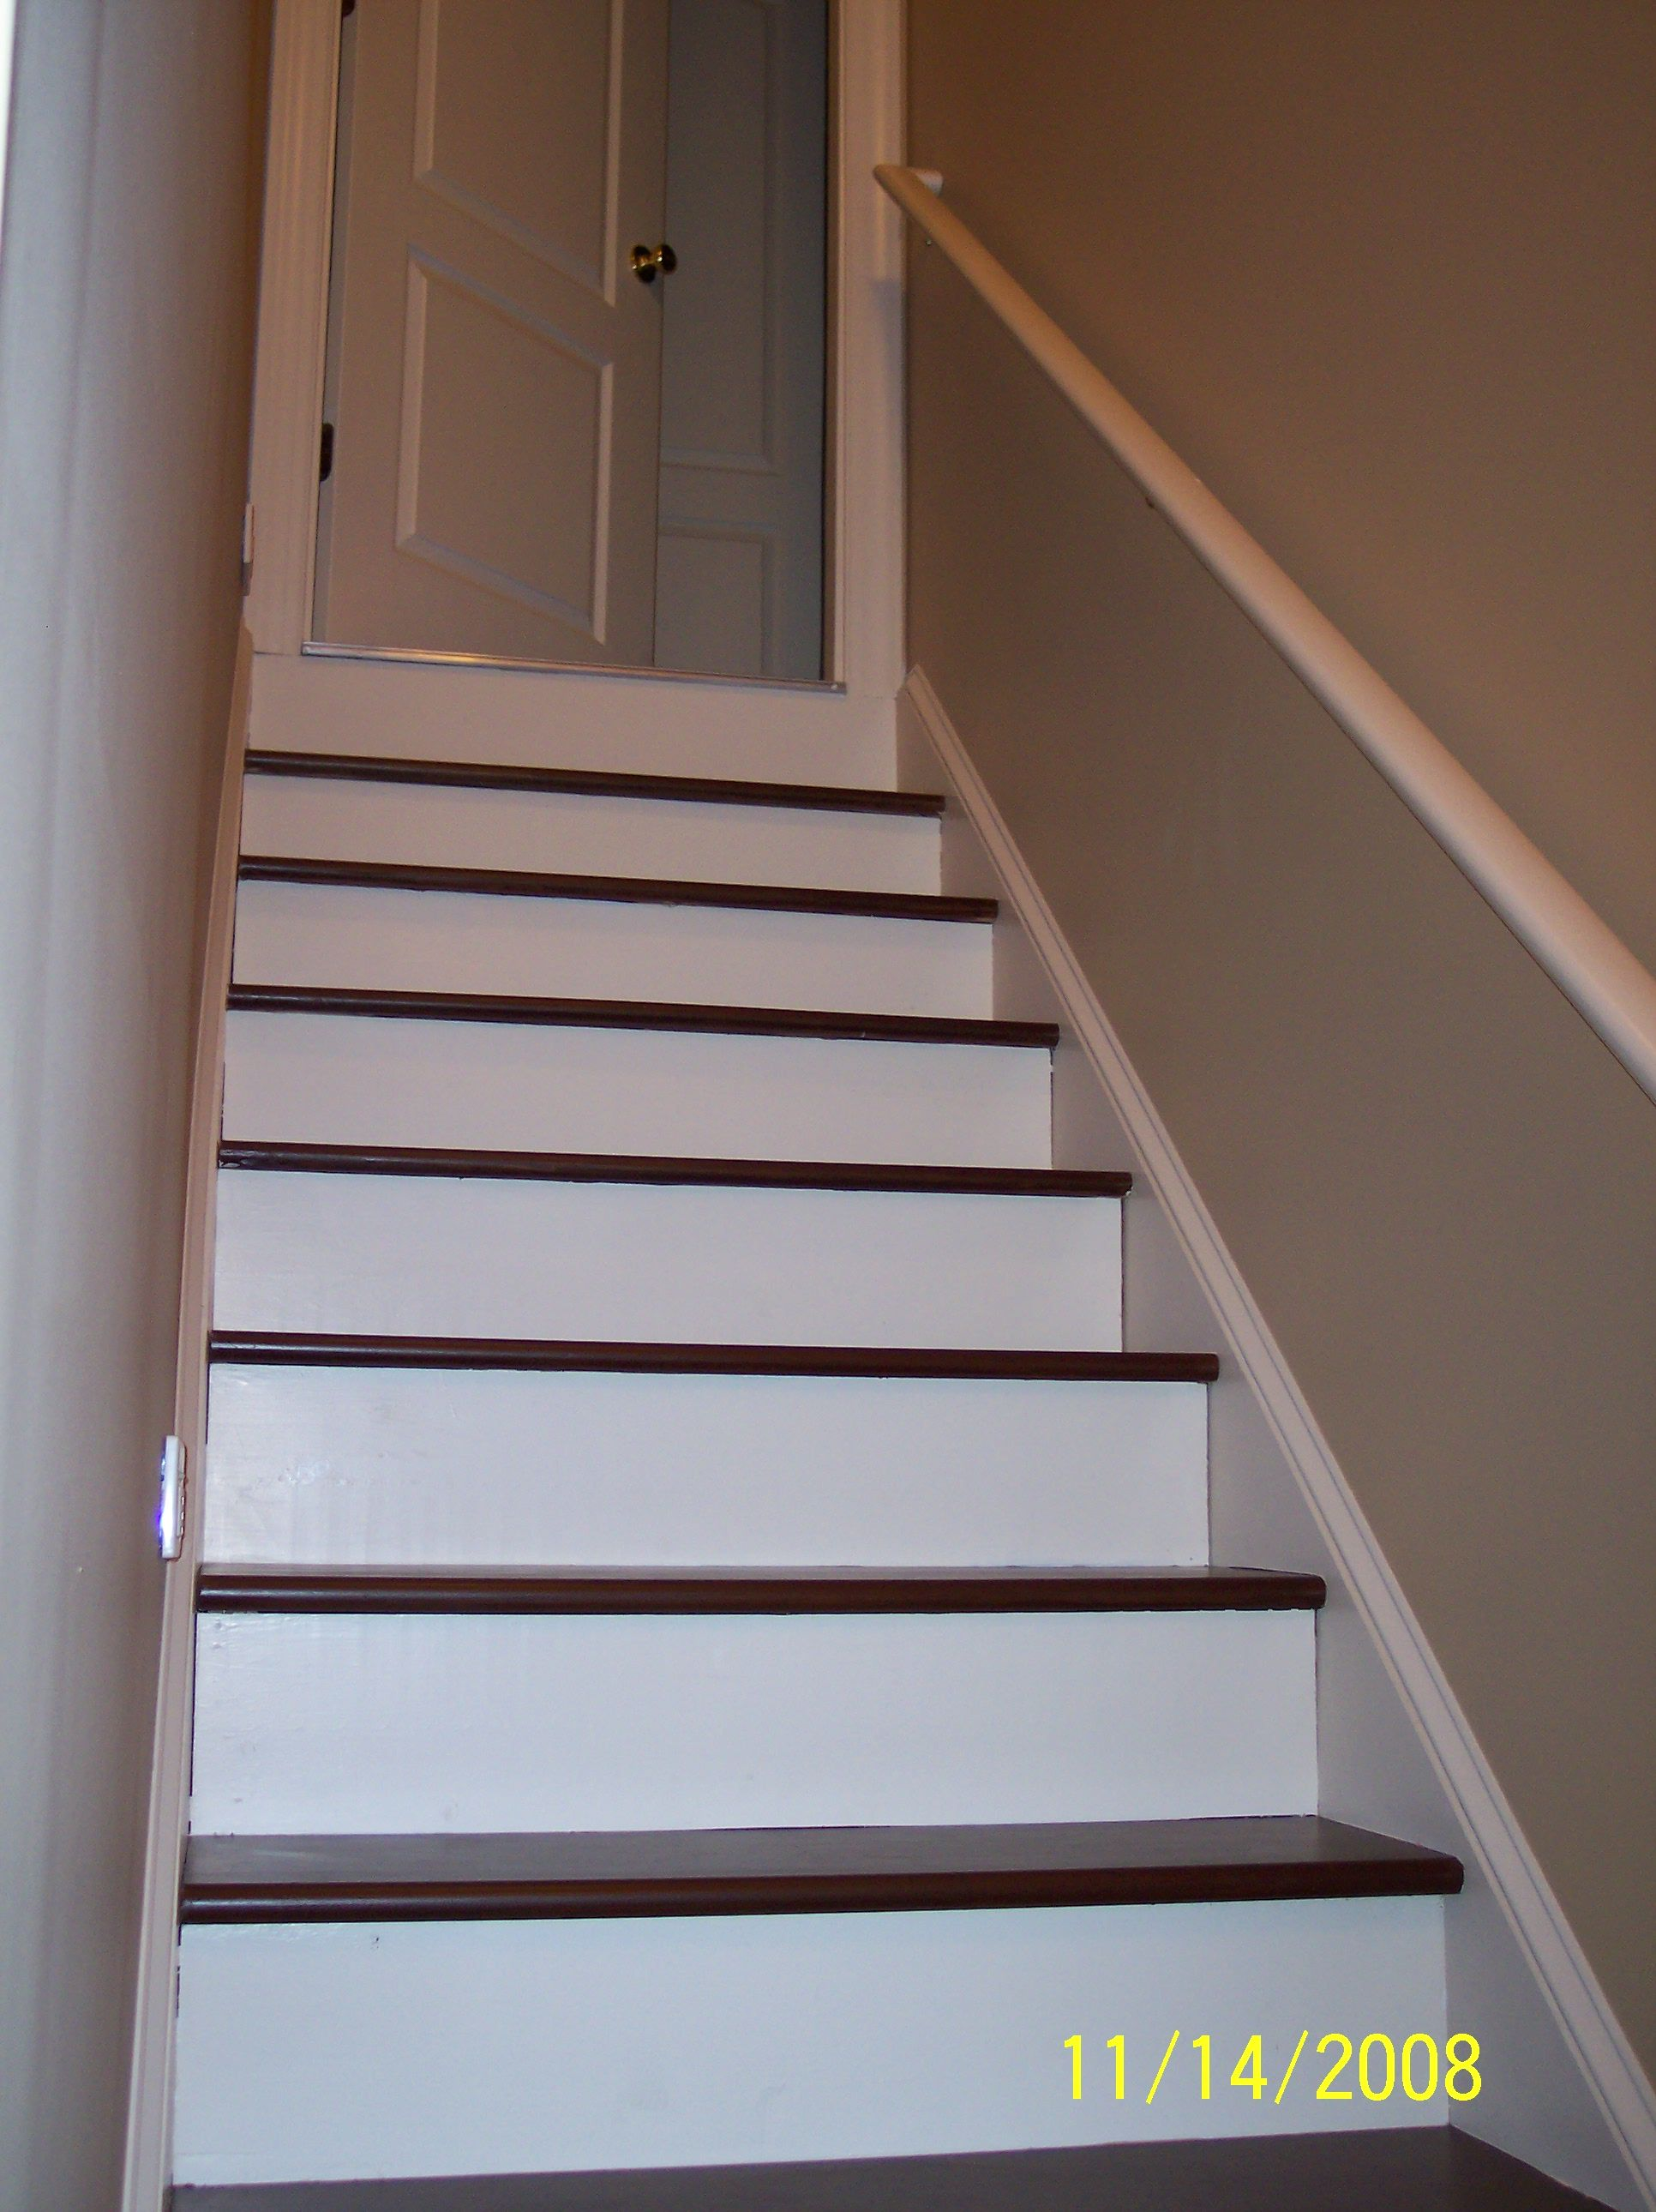 Elegant Rebuilding The Stairs. Basement StorageBasement RemodelingRemodeling Ideas Refinish ...